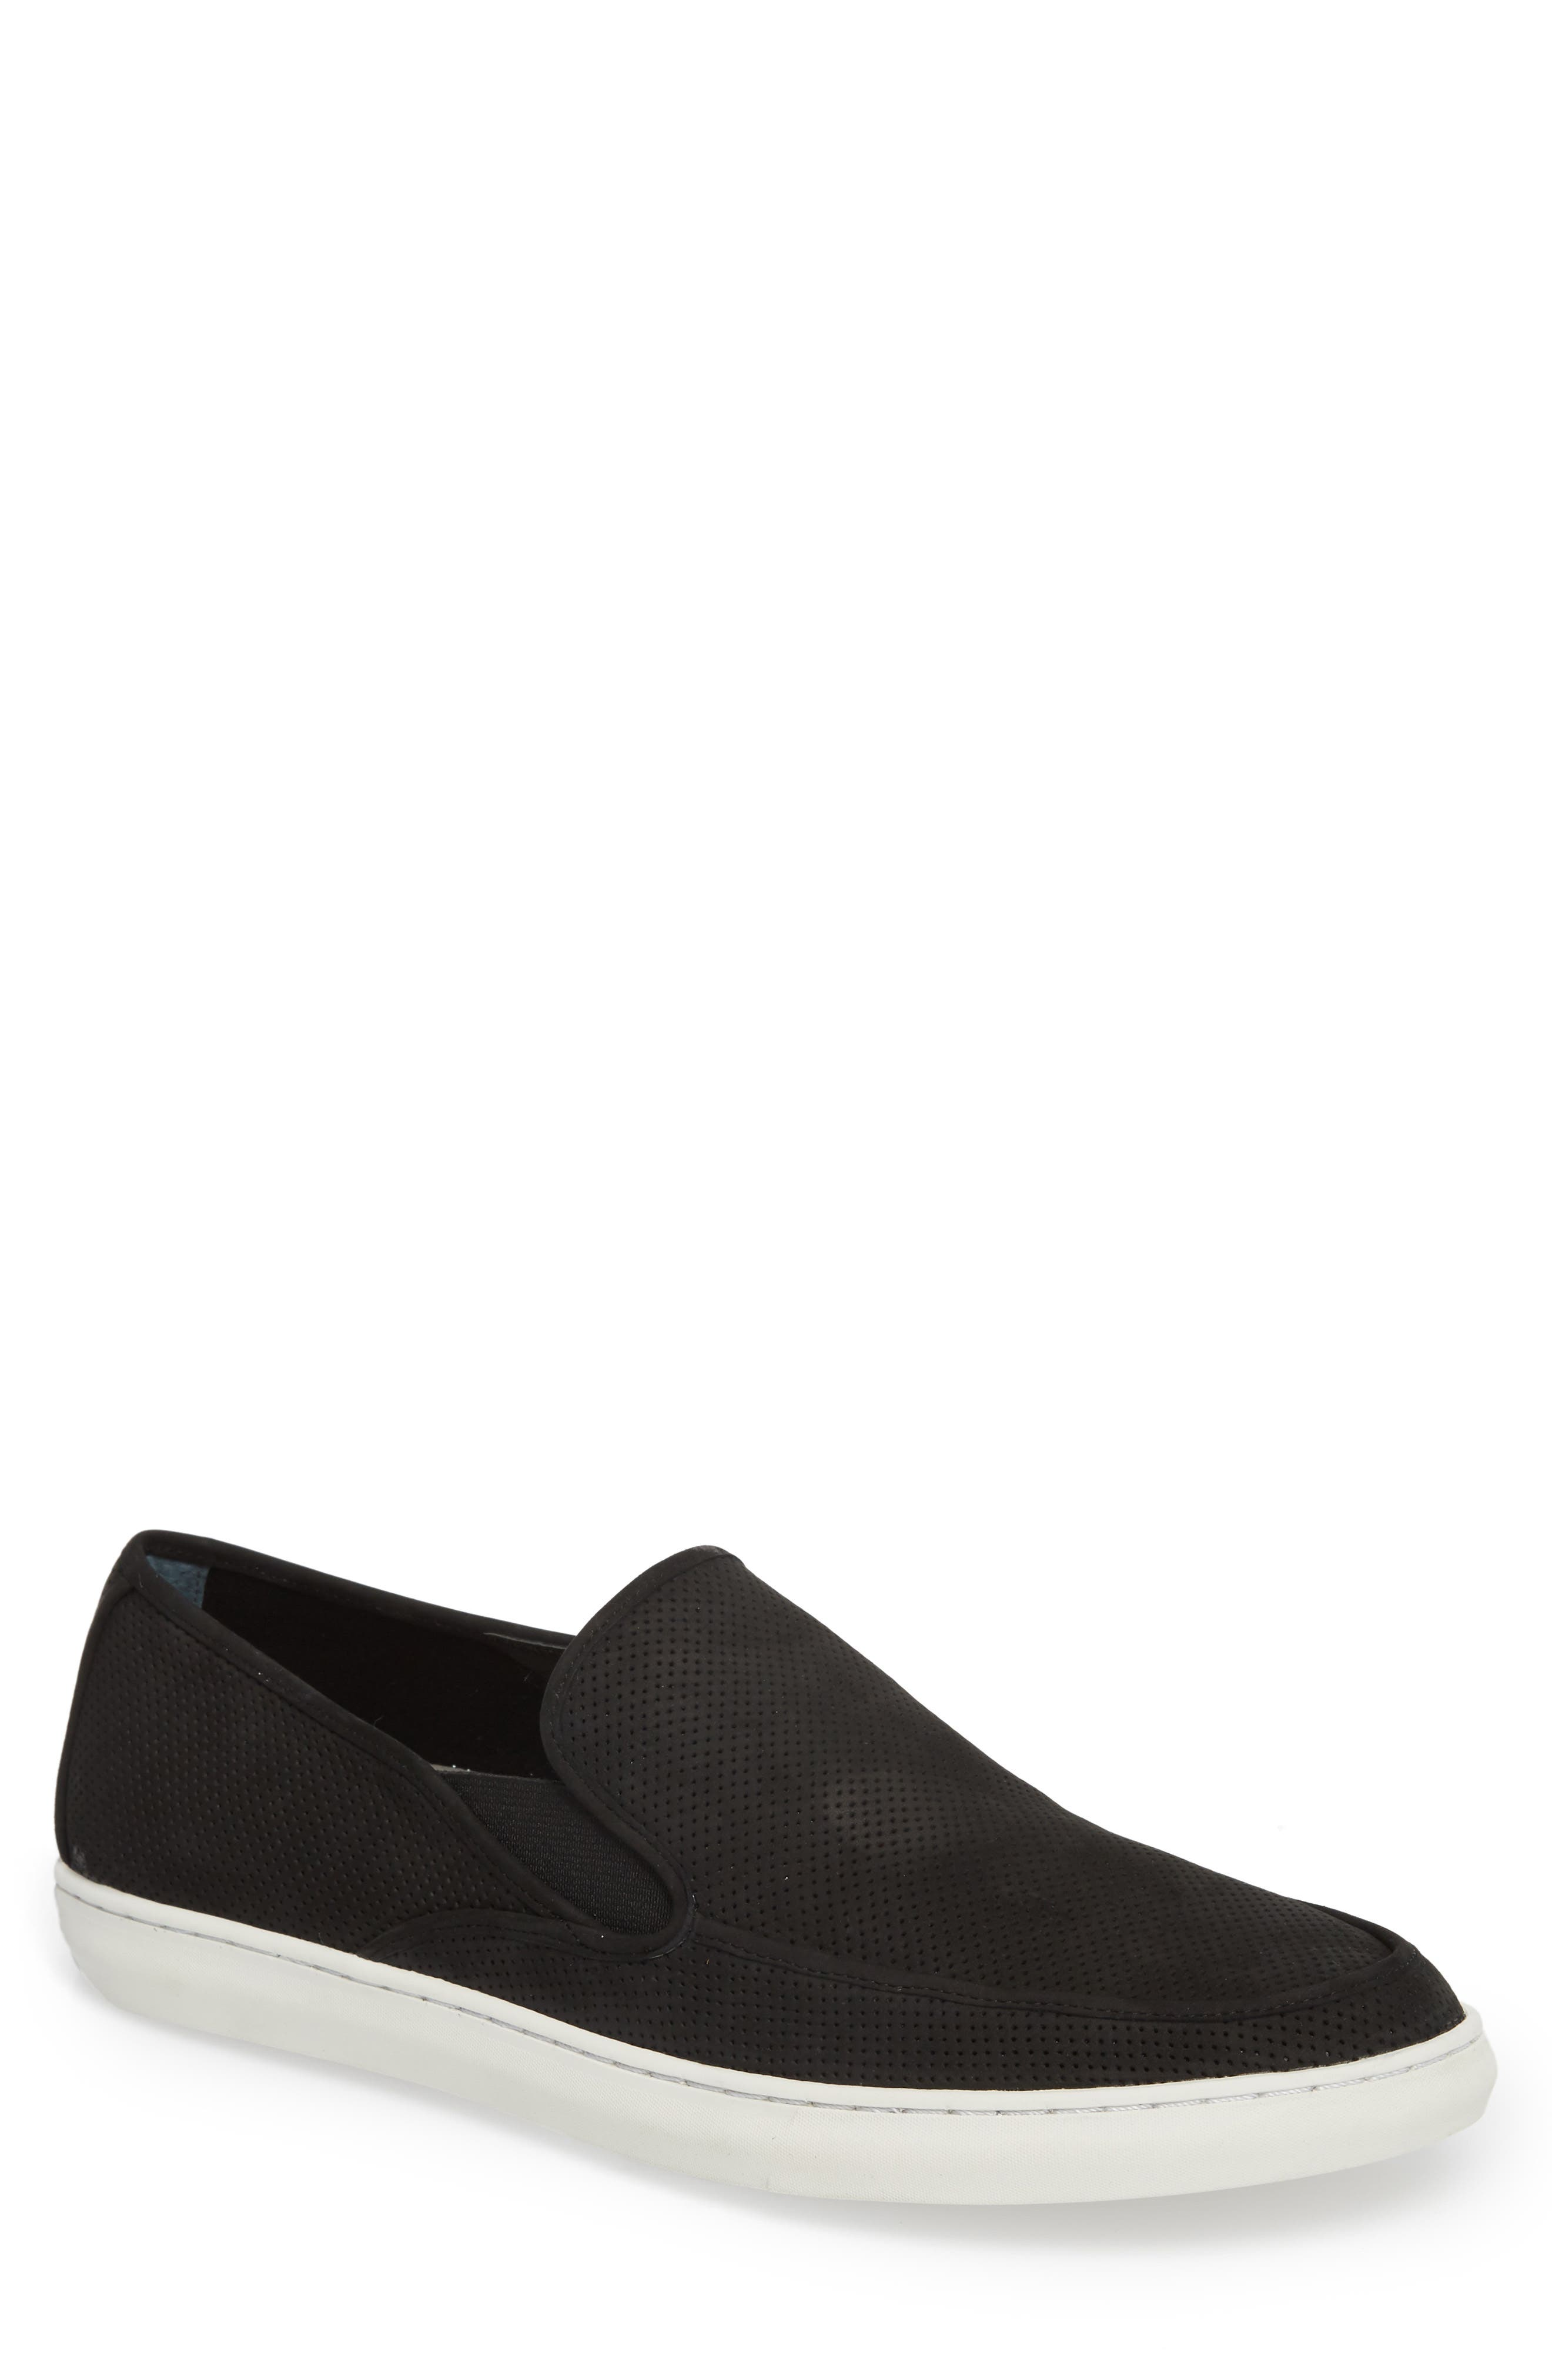 'Venice' Perforated Suede Slip-On,                         Main,                         color, BLACK NUBUCK